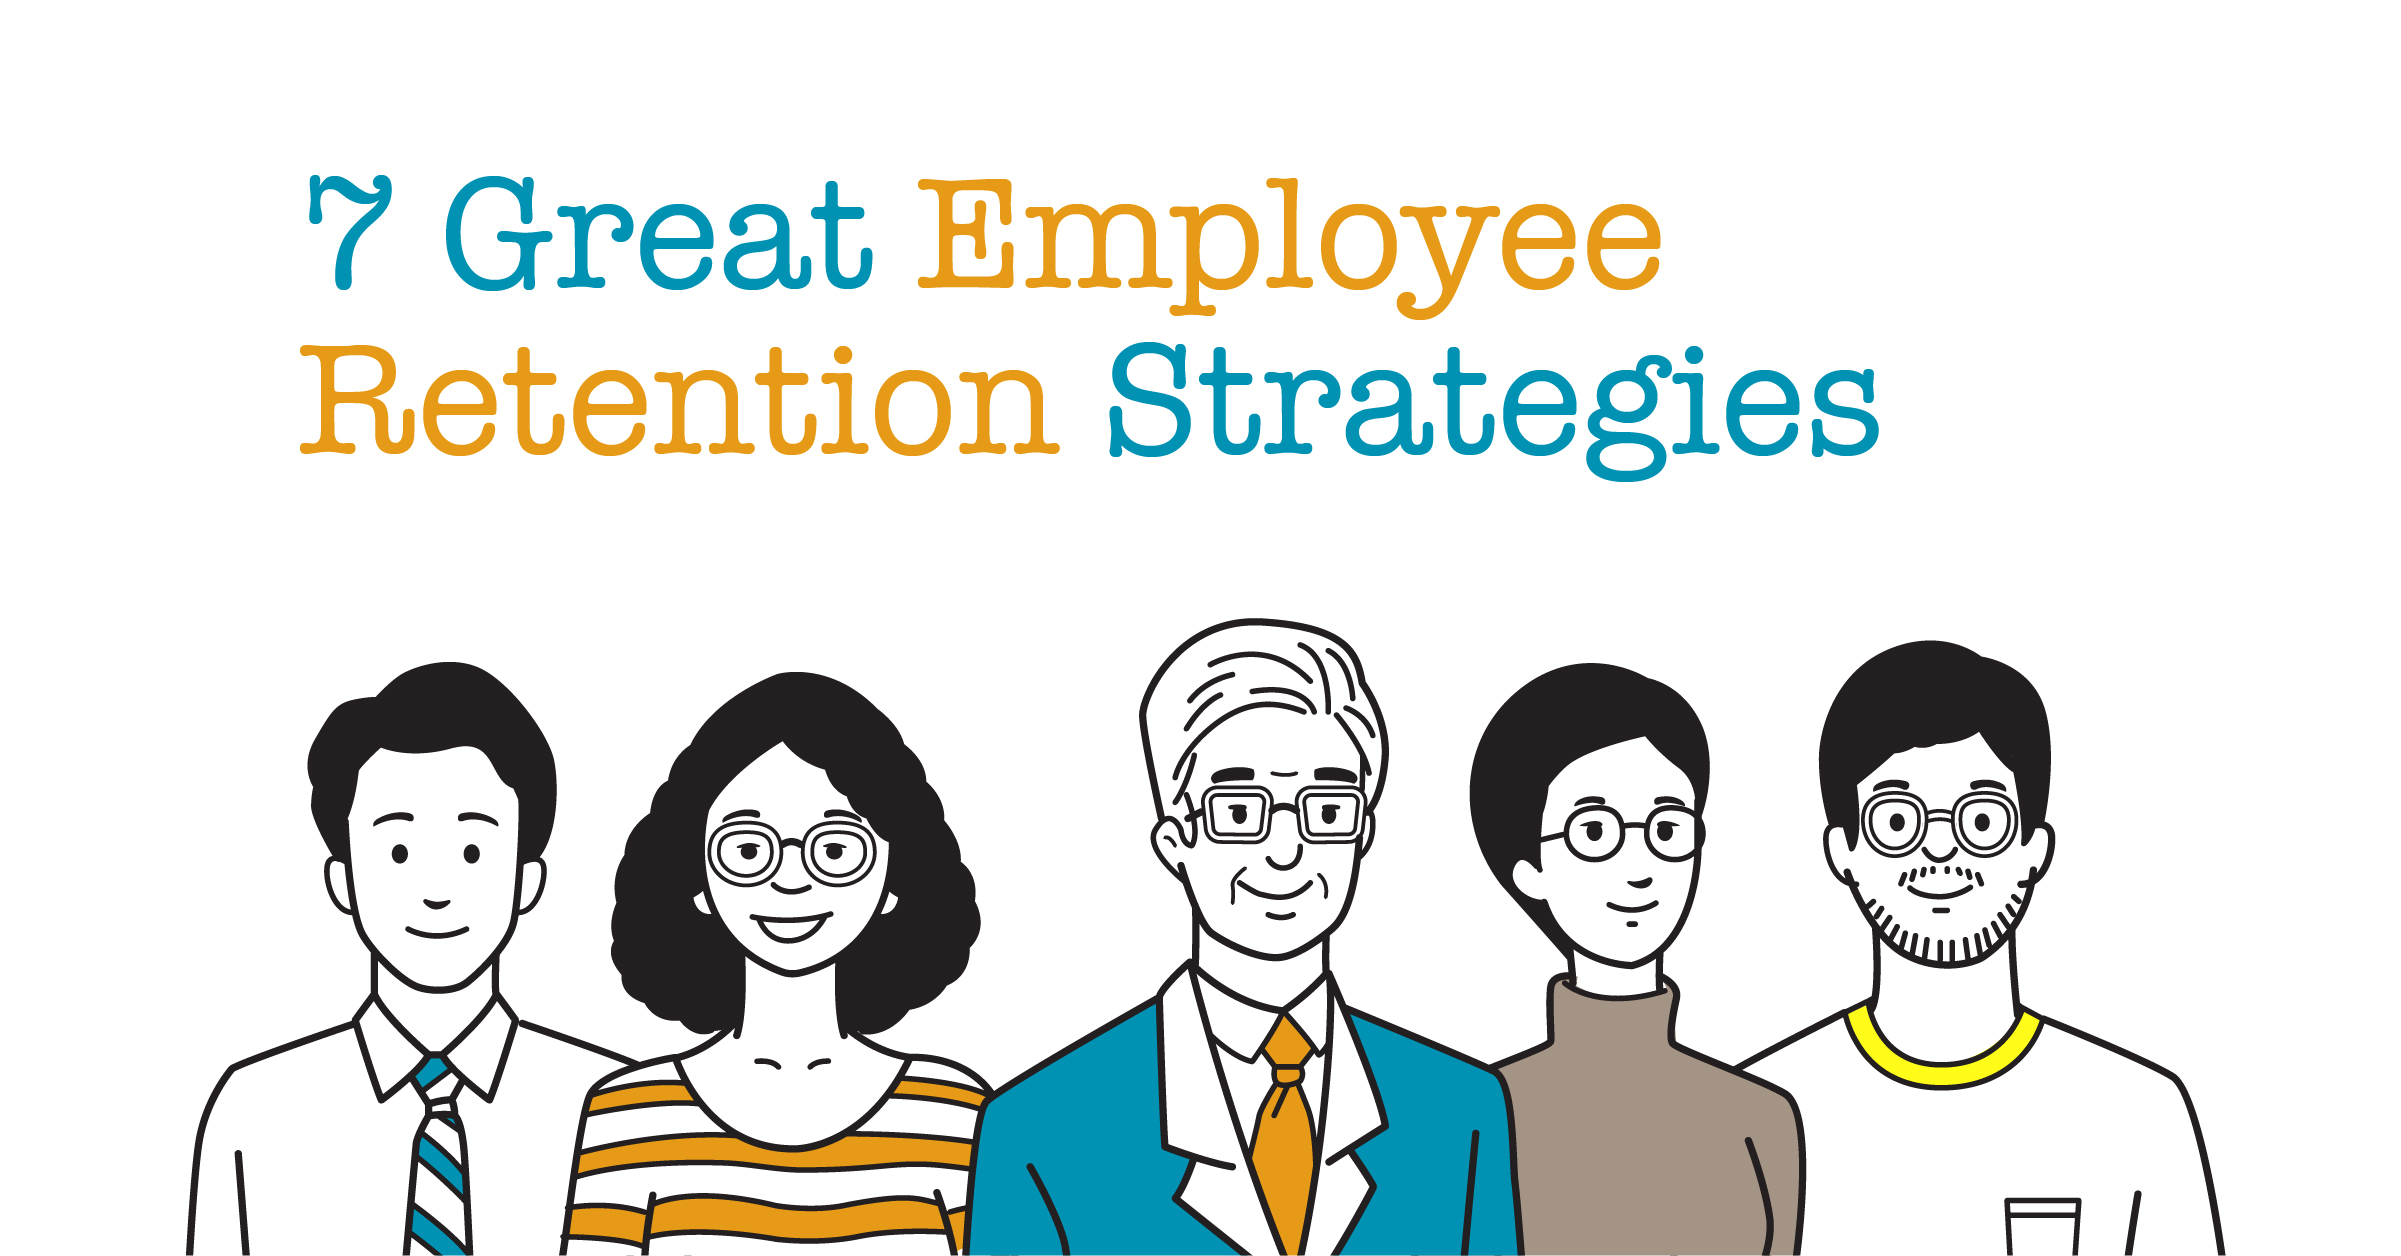 7 Great Employee Retention Strategies - When I Work